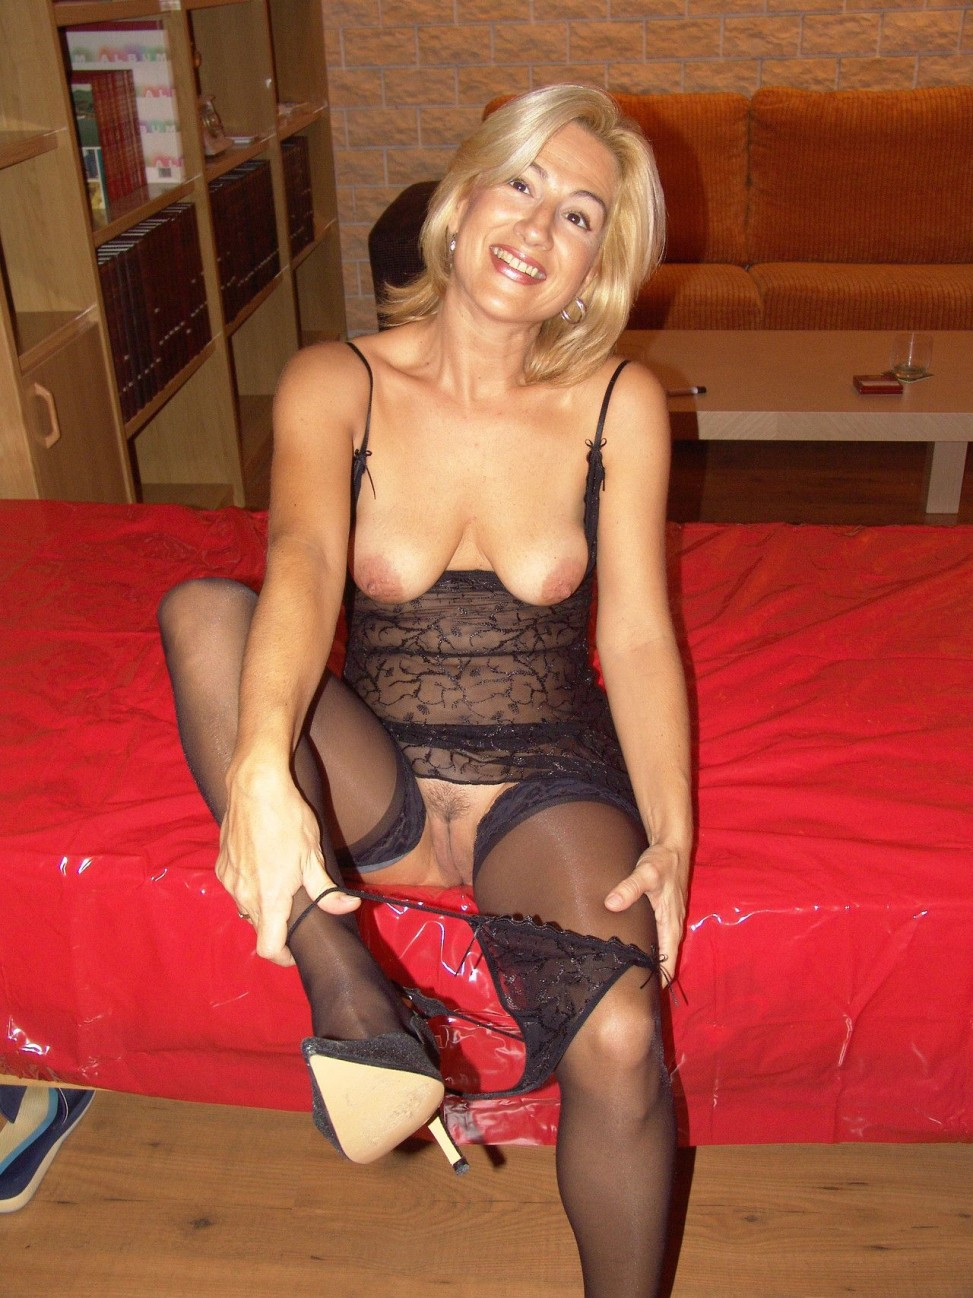 Milf In Black Lingerie And Nylons Taking Off Her Lace Panties Milf Update